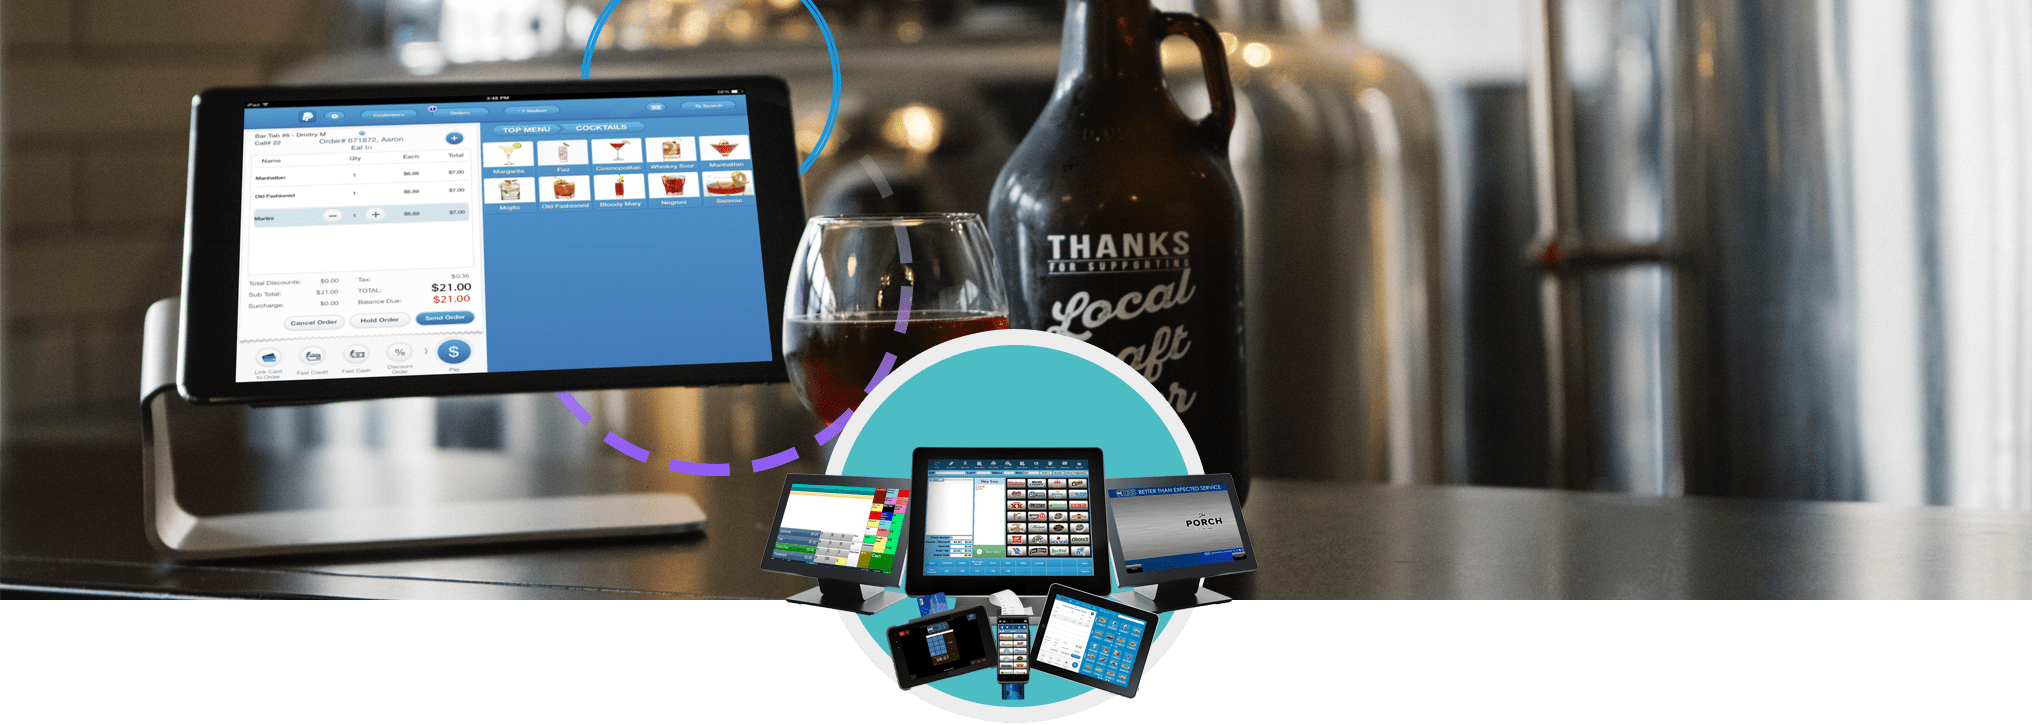 iPad on stand in brewery with POS hardware terminals